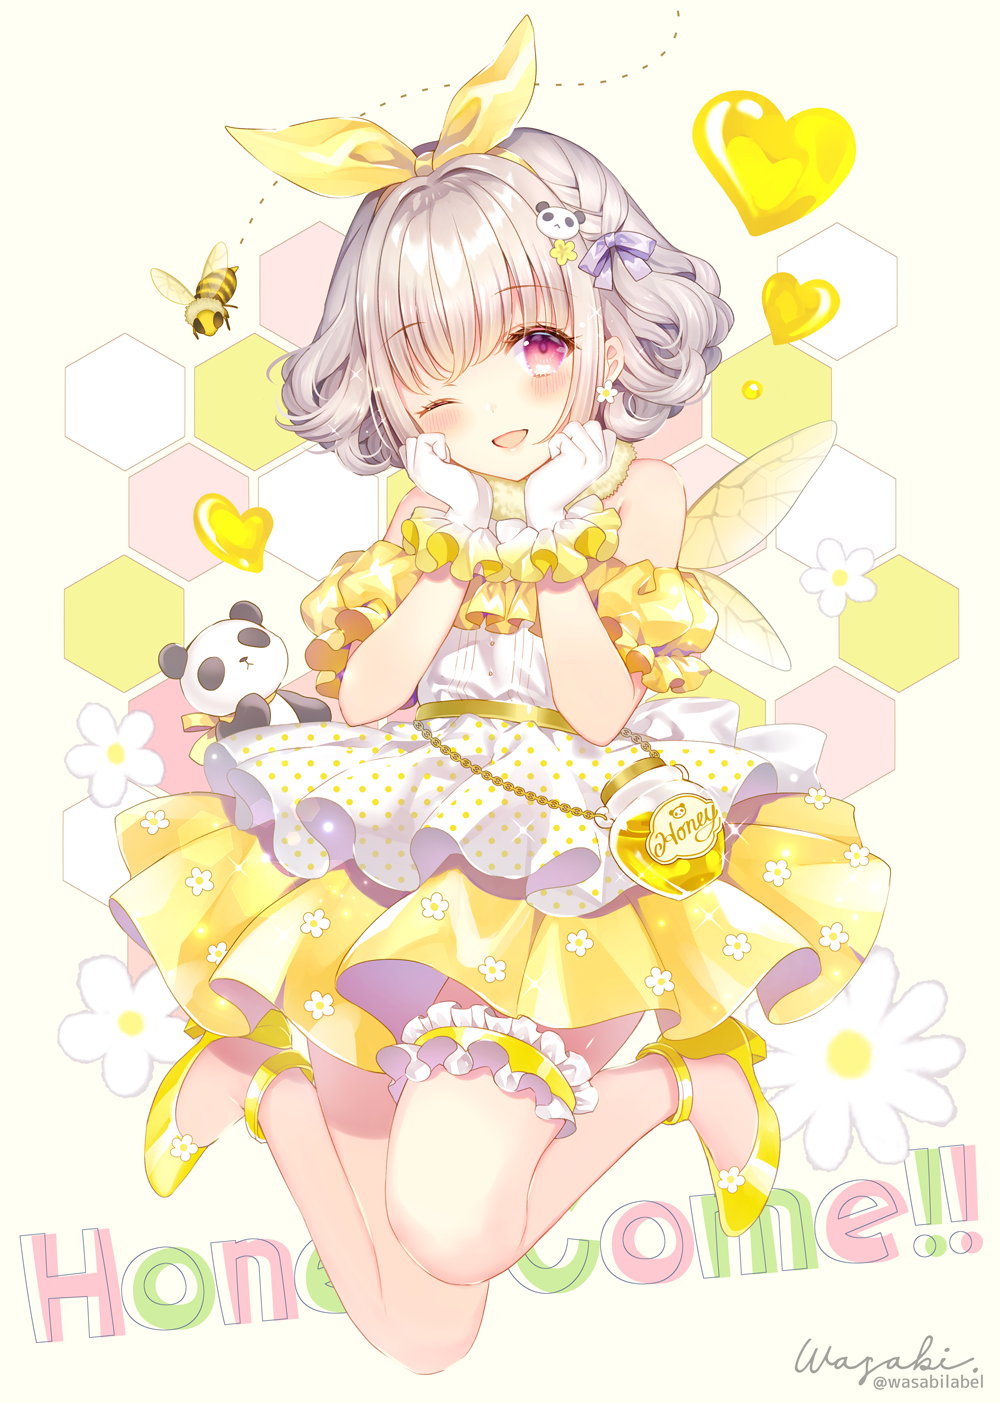 1girl ;d background_text bangs bare_shoulders bee beige_background blush bug commentary_request detached_sleeves earrings english_text eyebrows_visible_through_hair flower flower_earrings full_body gloves grey_hair hair_flower hair_ornament hair_ribbon hands_up heart highres honeycomb_(pattern) insect jewelry kuusou_code_plus nemukawa_yumena one_eye_closed open_mouth panda_hair_ornament pleated_skirt puffy_short_sleeves puffy_sleeves red_eyes ribbon shirt shoes short_hair short_sleeves signature skirt sleeveless sleeveless_shirt smile solo twitter_username virtual_youtuber wasabi_(sekai) white_flower white_gloves white_shirt yellow_flower yellow_footwear yellow_ribbon yellow_skirt yellow_sleeves